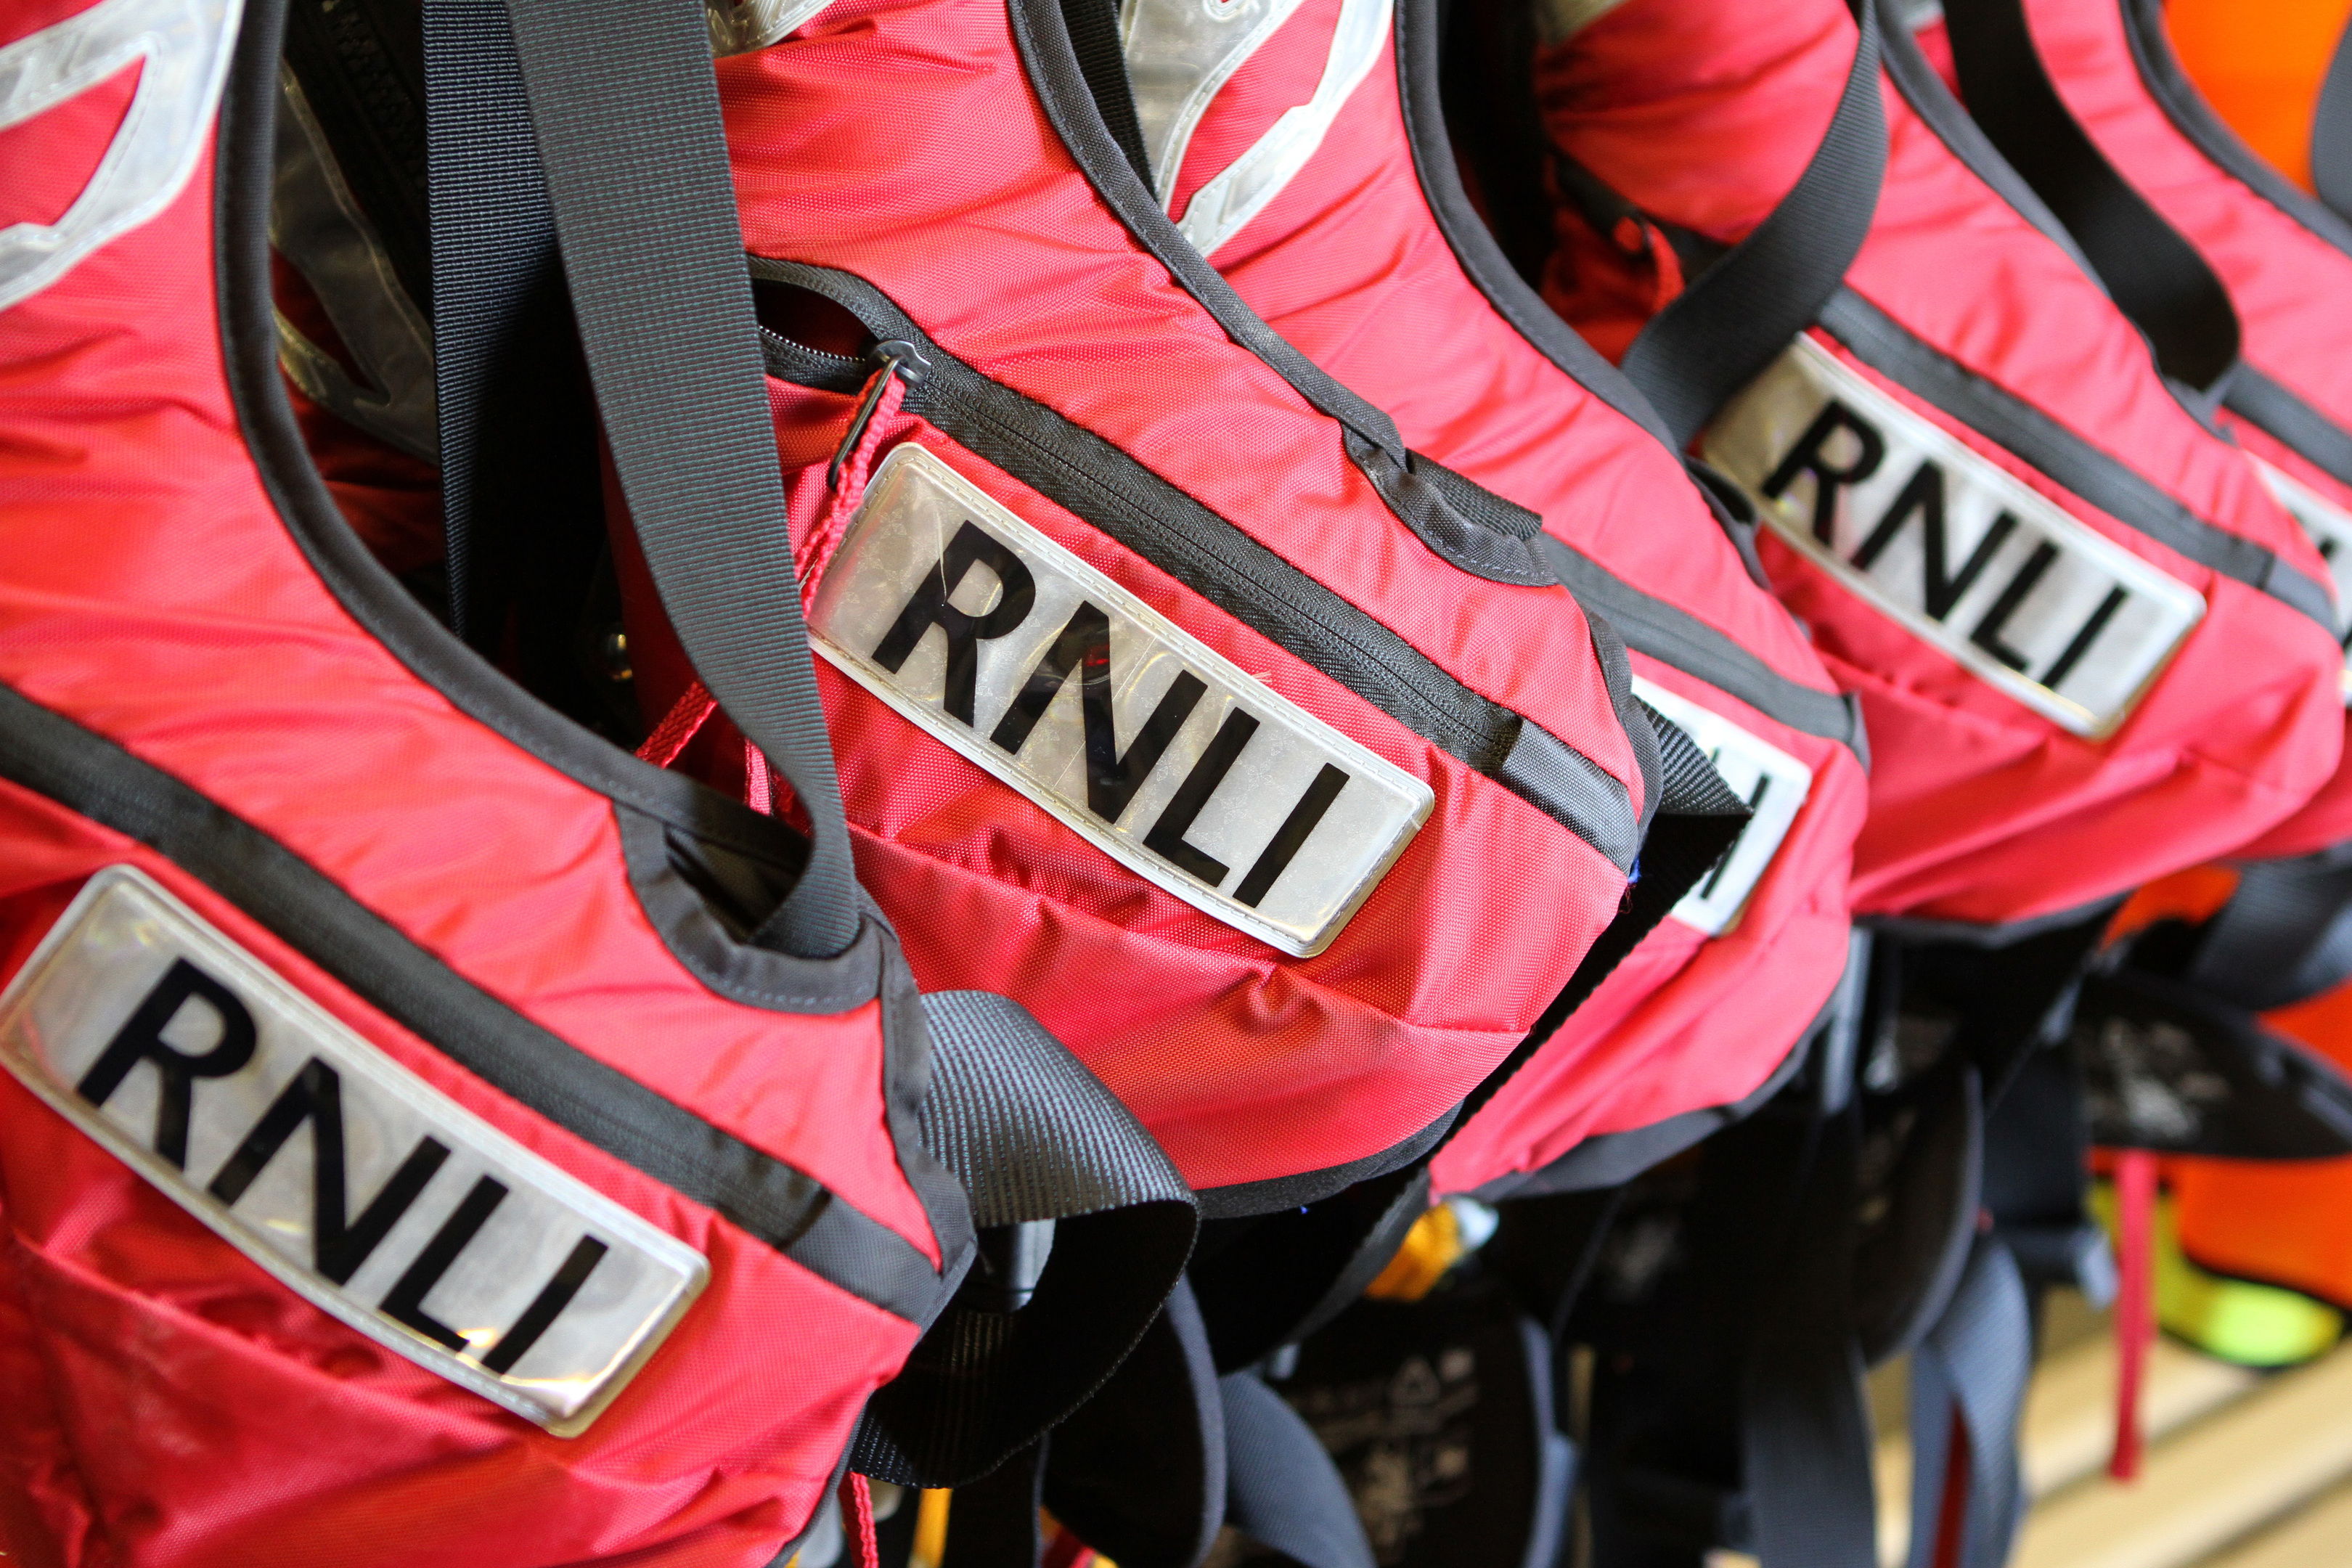 In a move welcomed by the sole survivor of the tragedy, the international authority on maritime safety has been asked to review the way life jackets are tested.